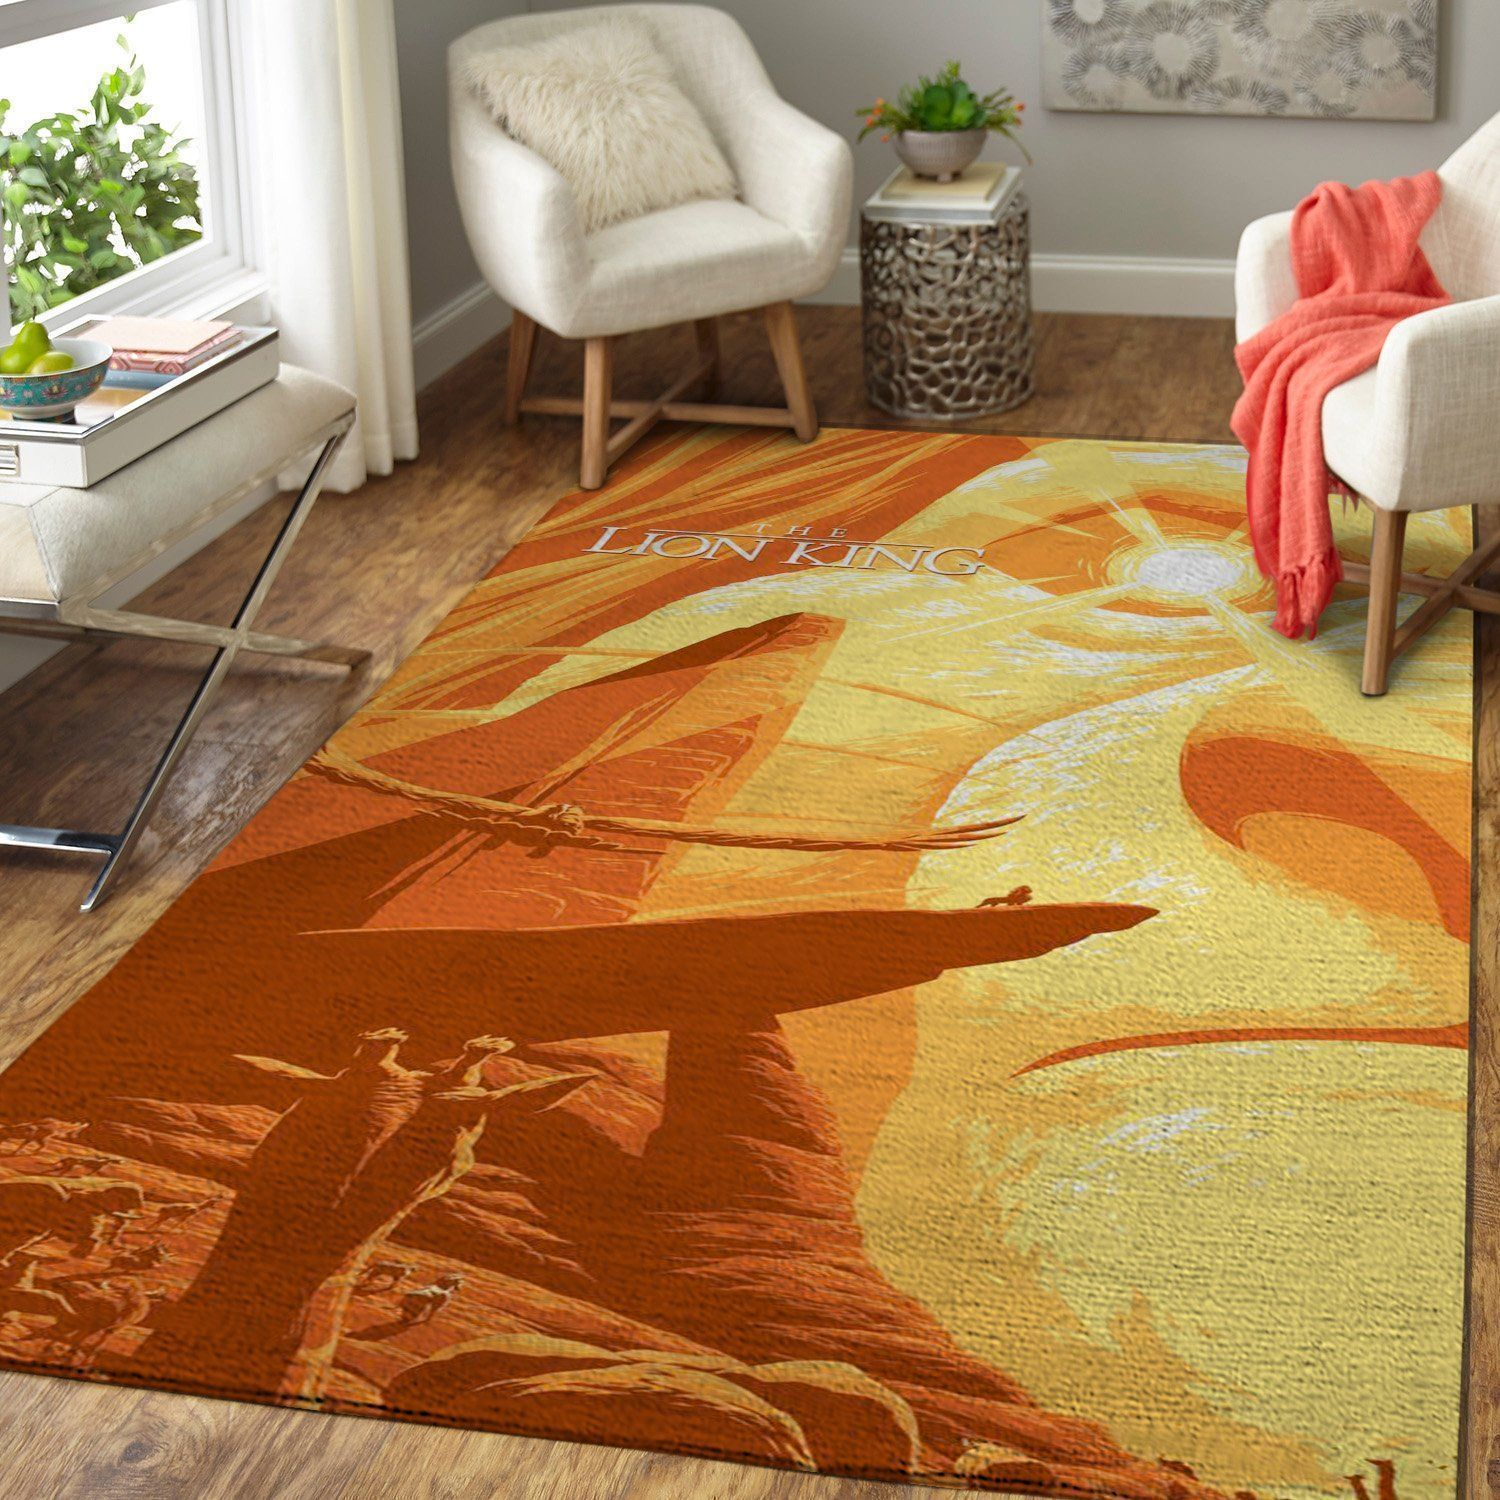 The Lion King Area Rugs, Disney Movie Living Room Carpet, Custom Floor Decor 19102123